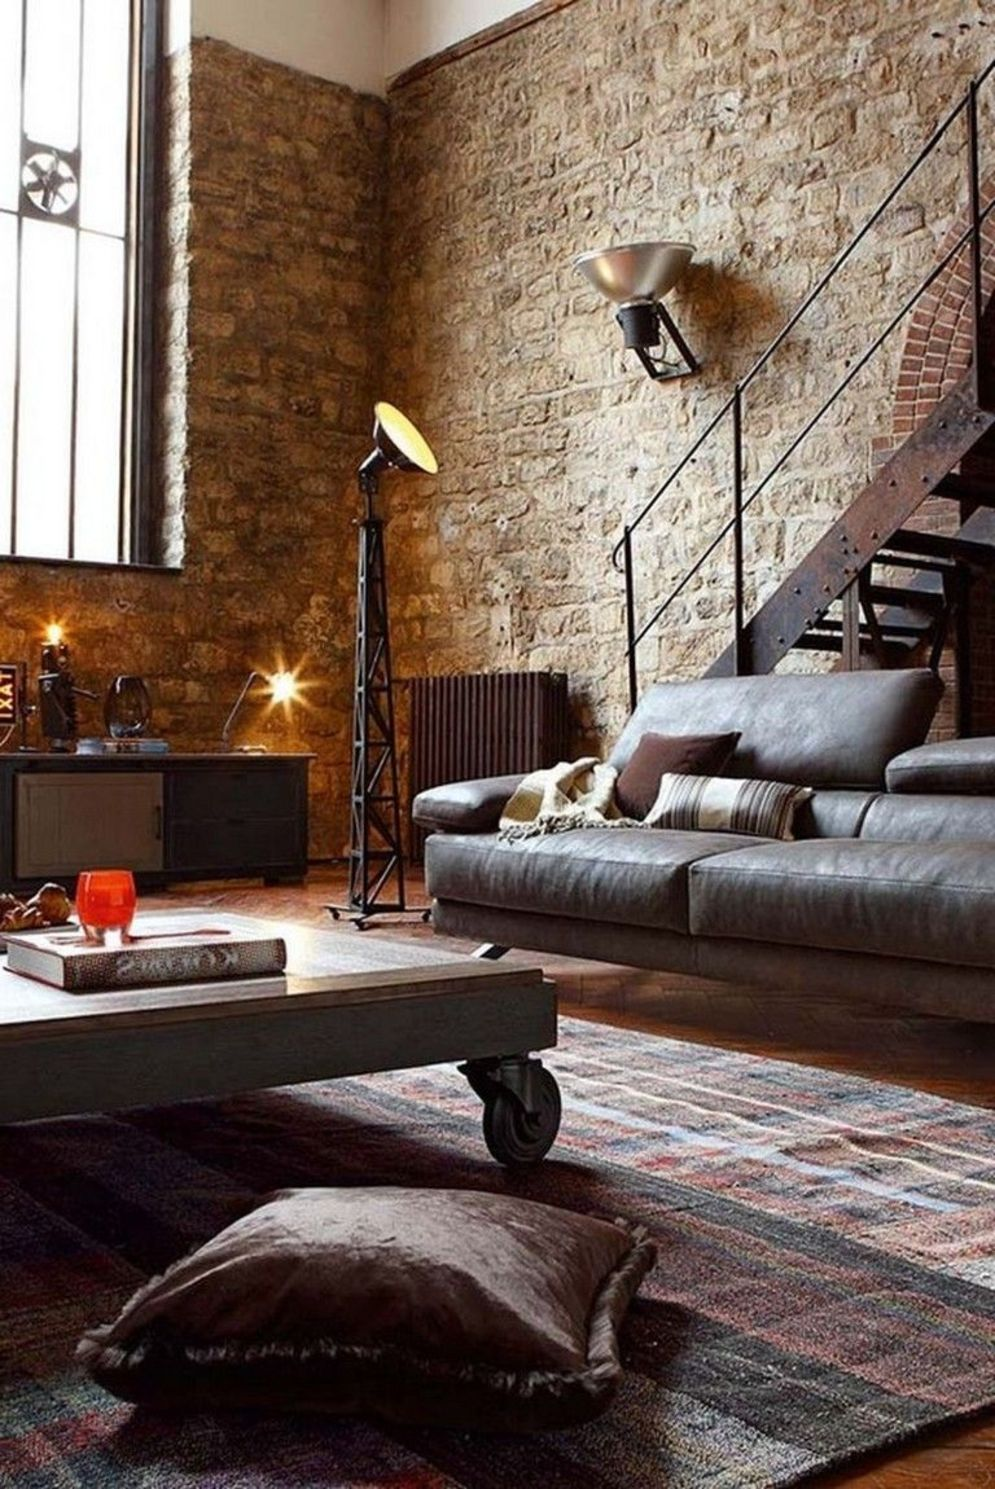 Wonderful interior statement brick wall improving interior display with modern rustic combination Image 45